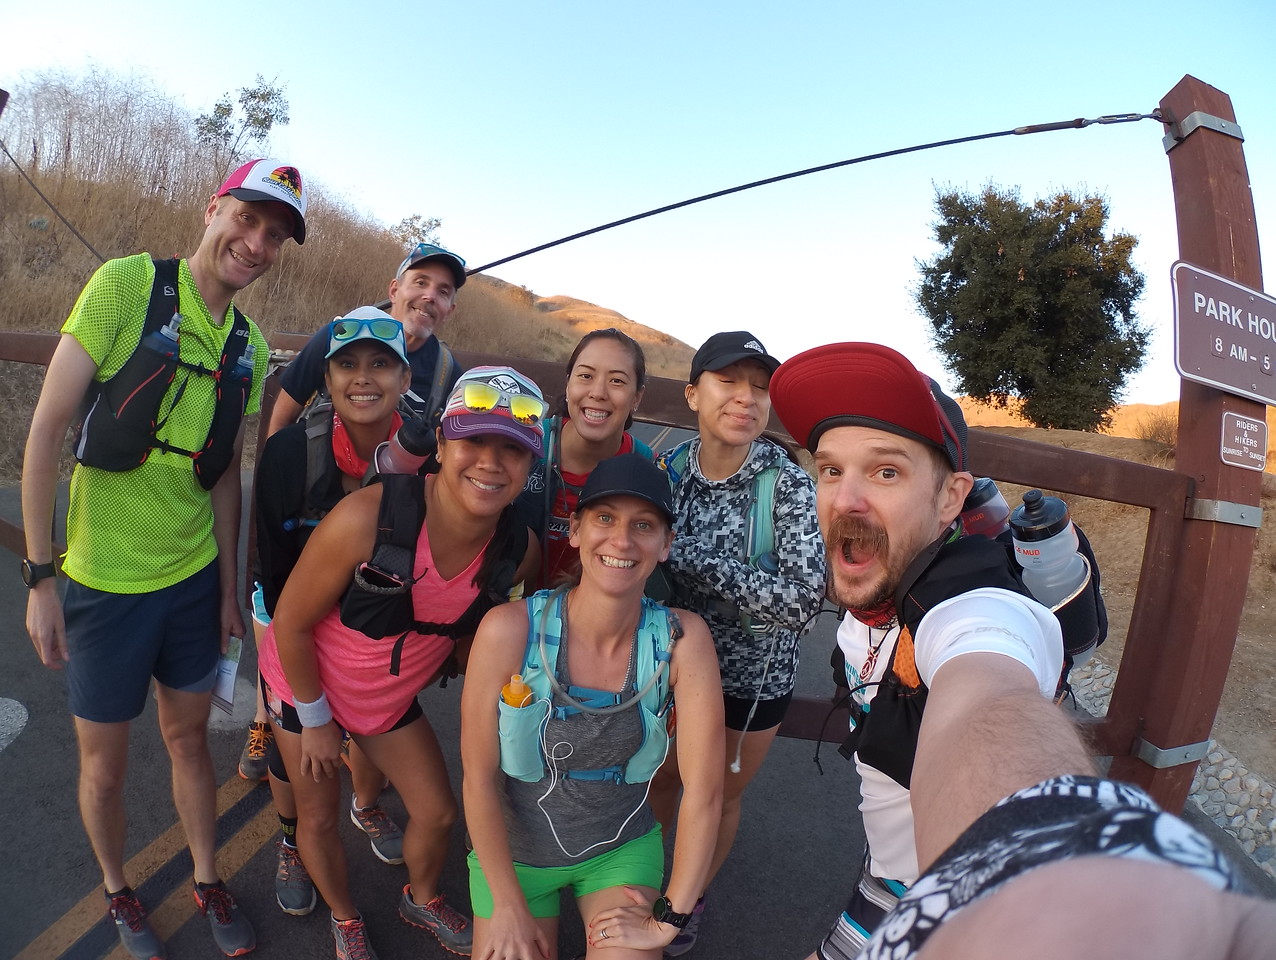 Chino hills 50k preview with thy crew! 09-30-2017